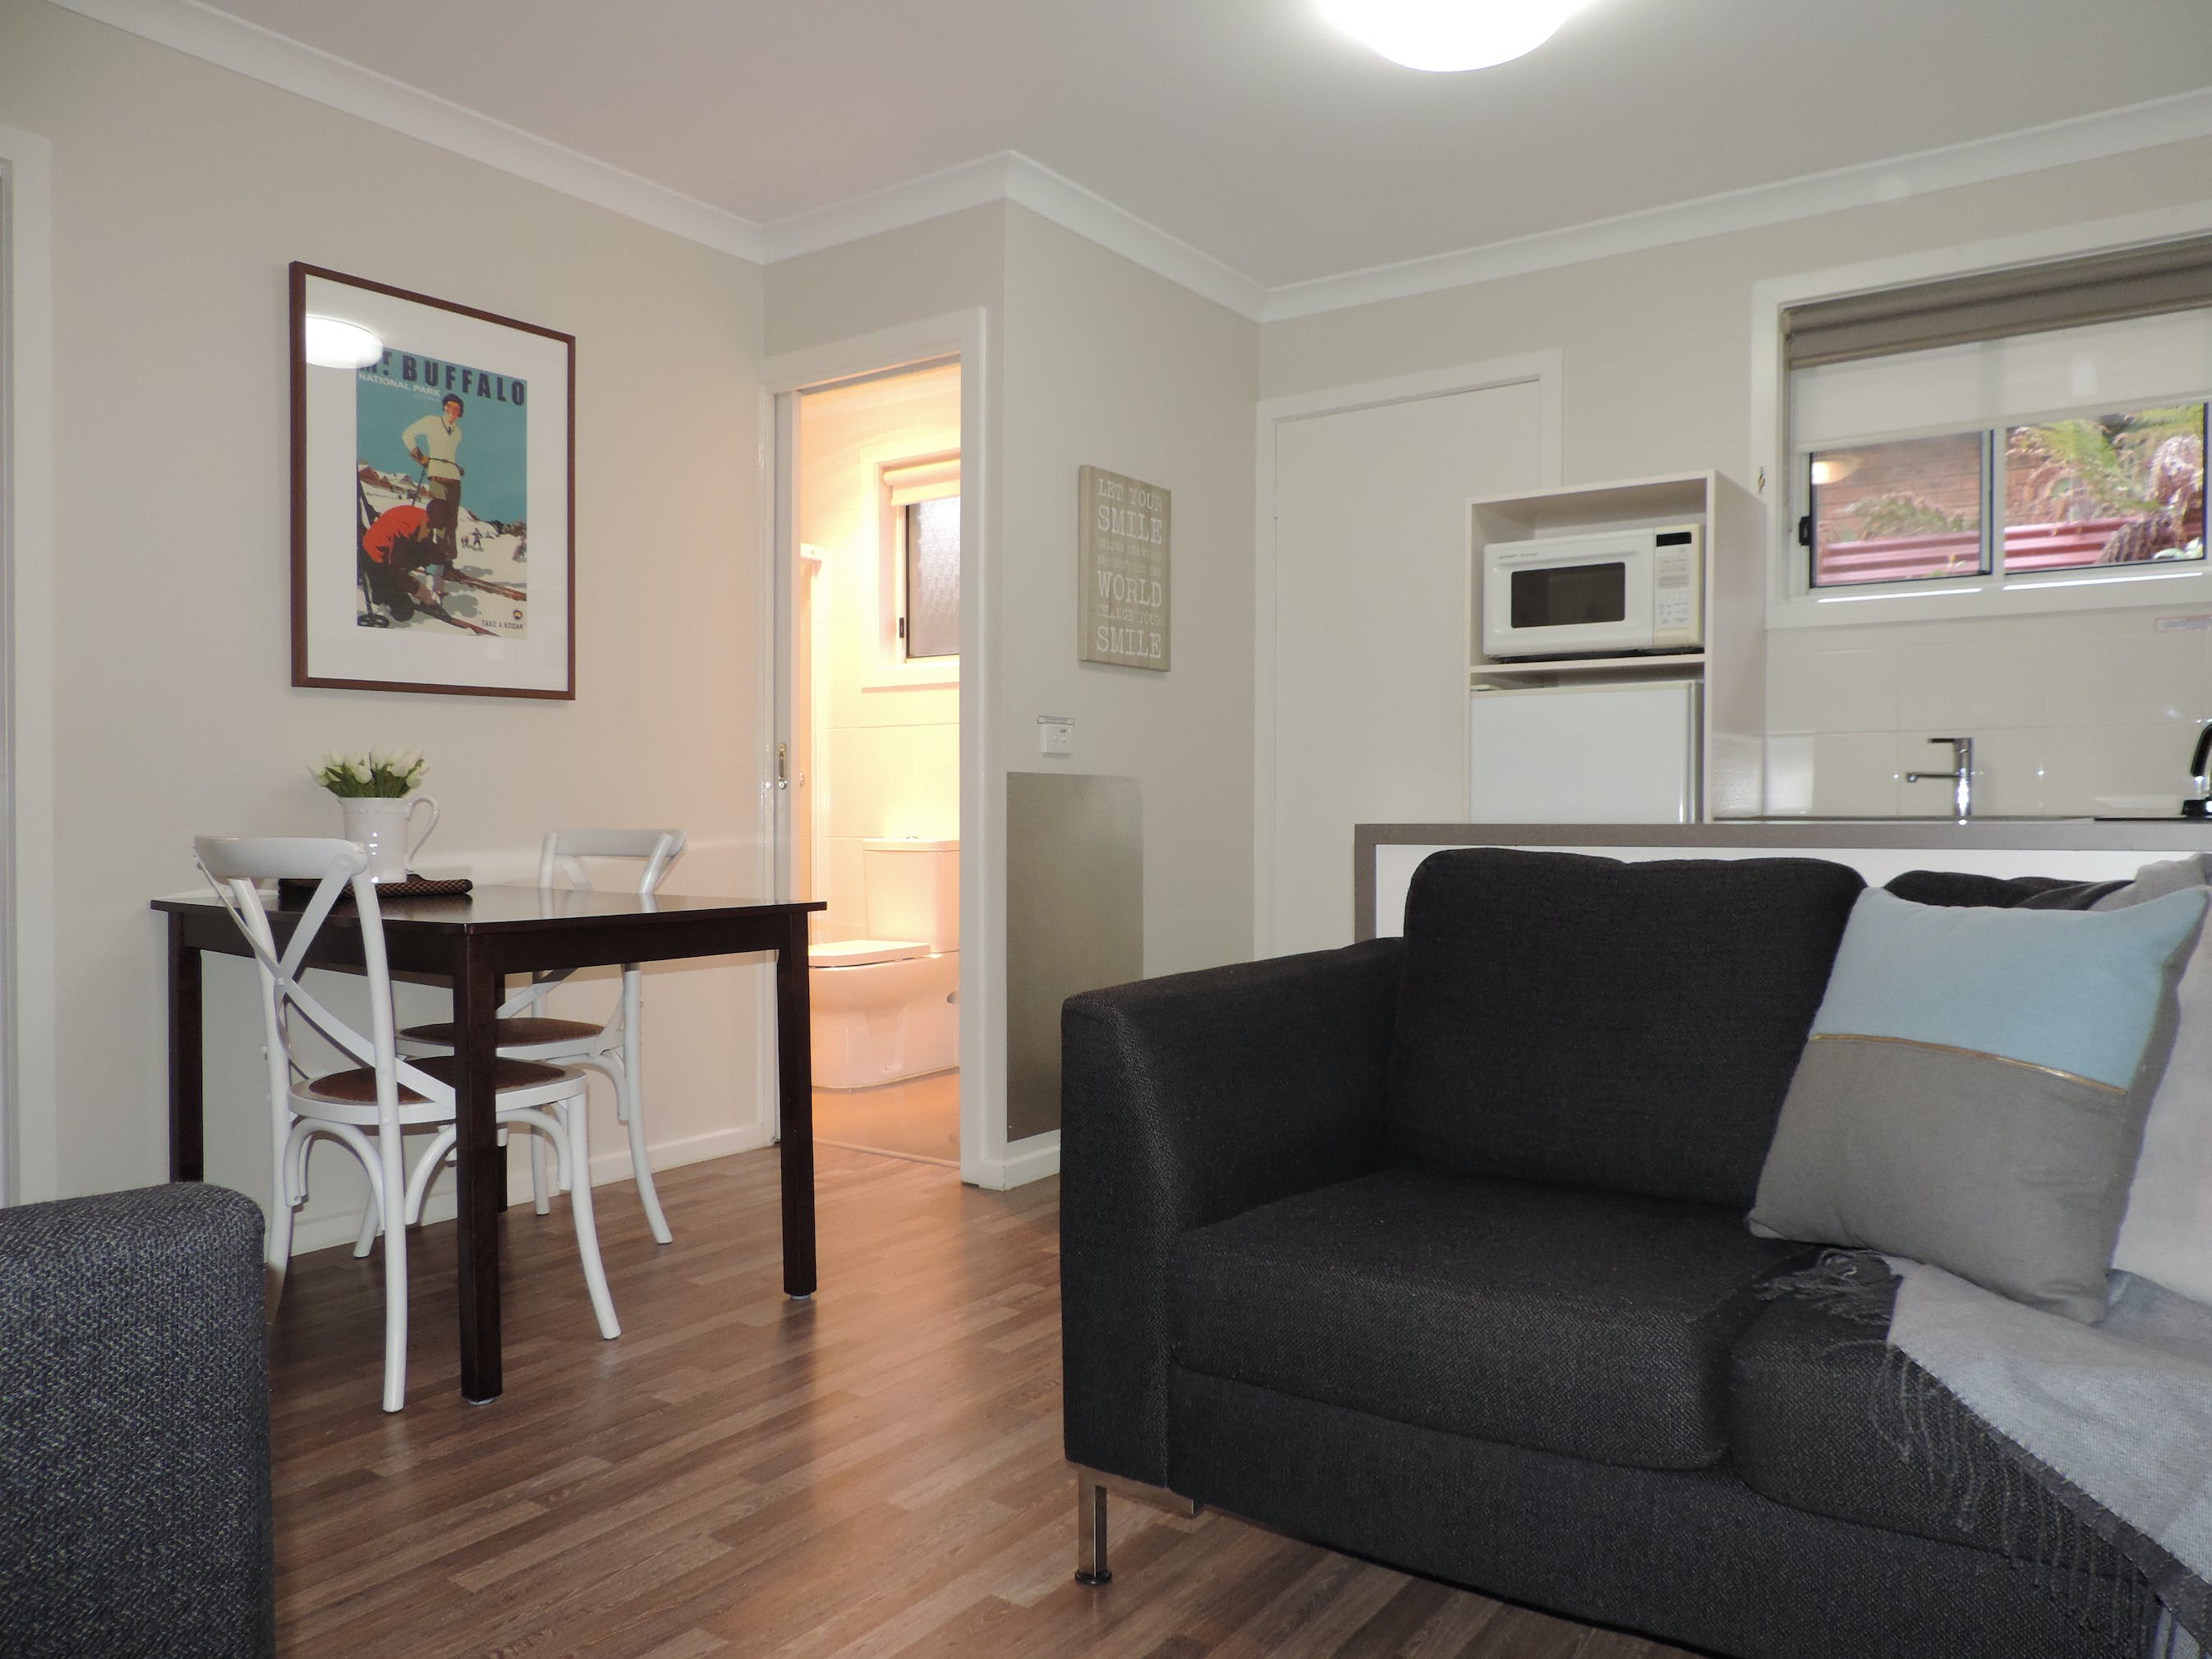 Apartment 2 - Open plan living & dining room